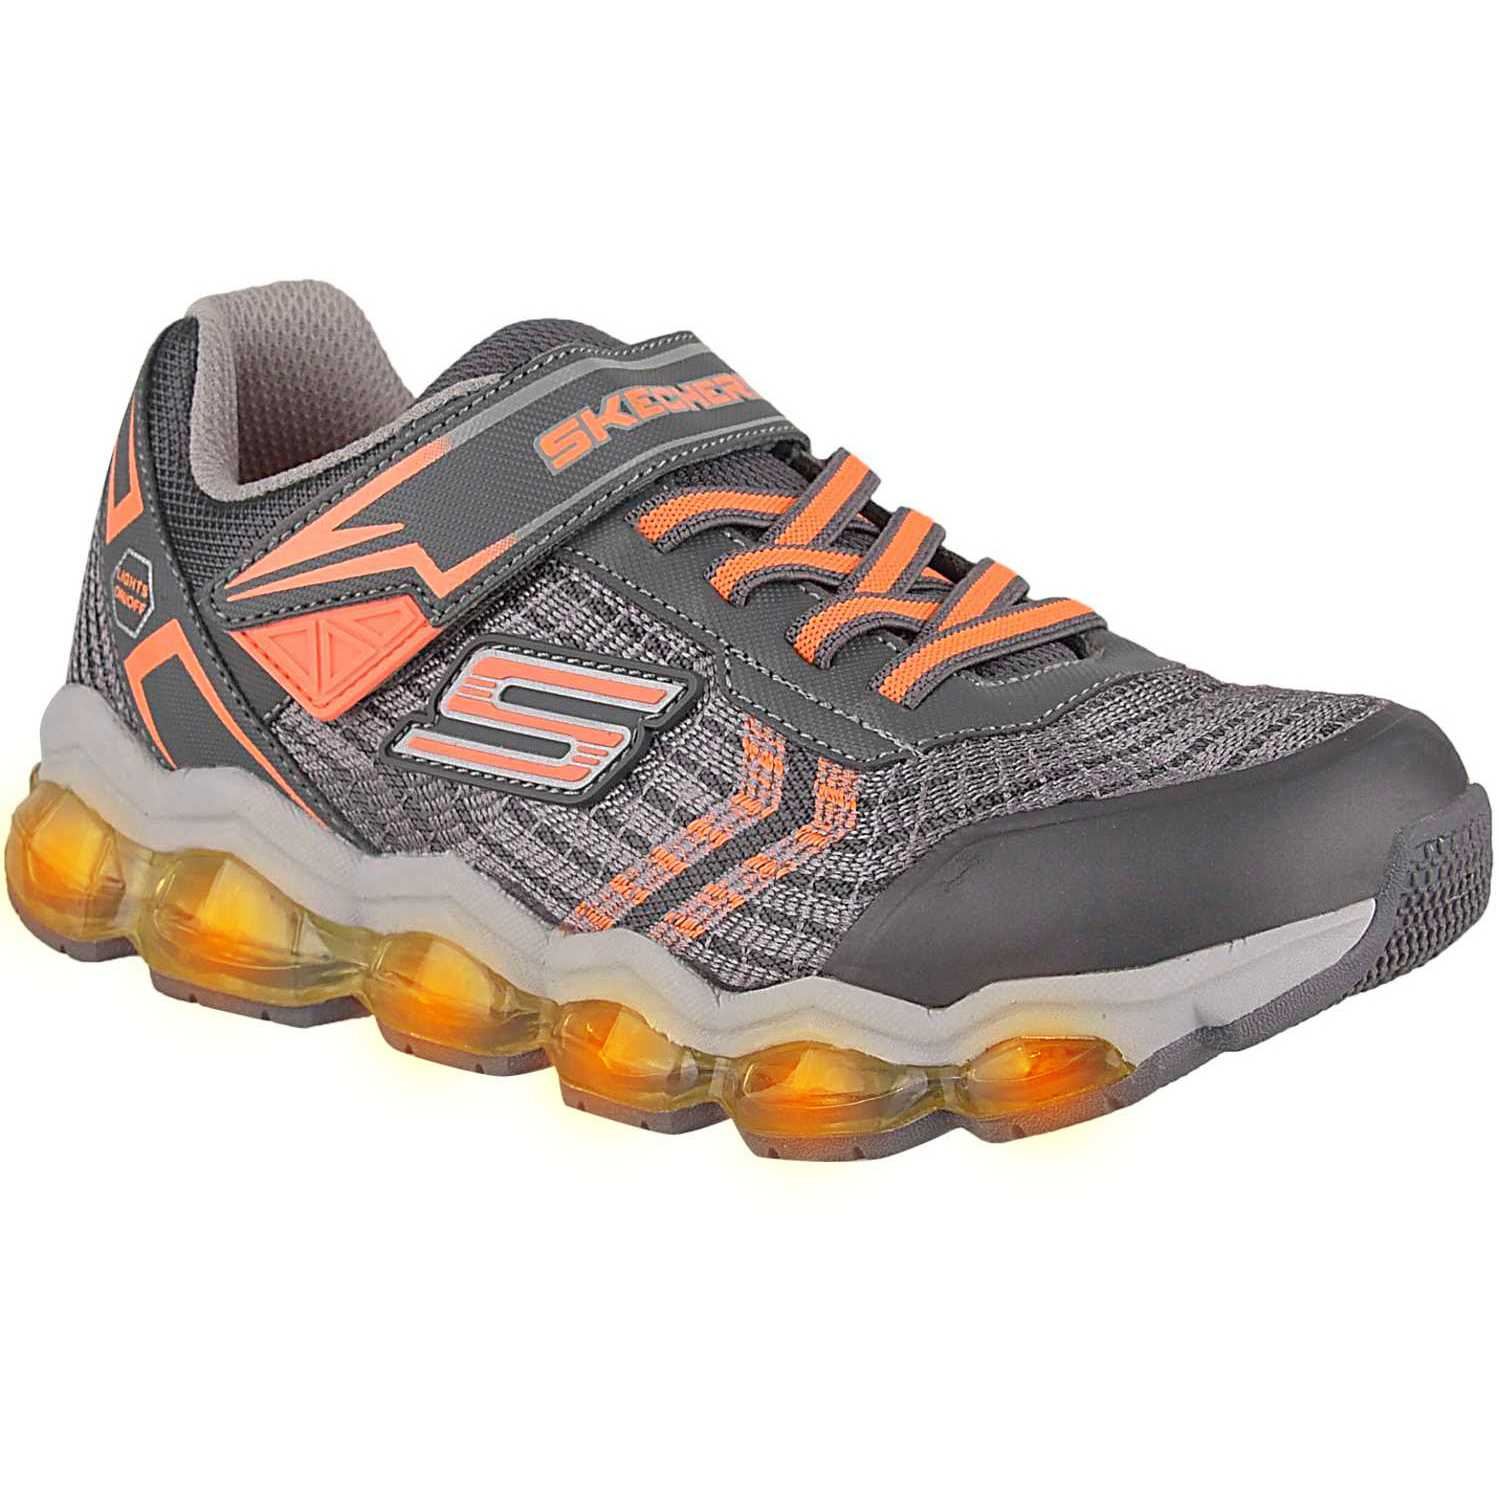 Casual de Niño Skechers Gris / amarillo turbo-flash